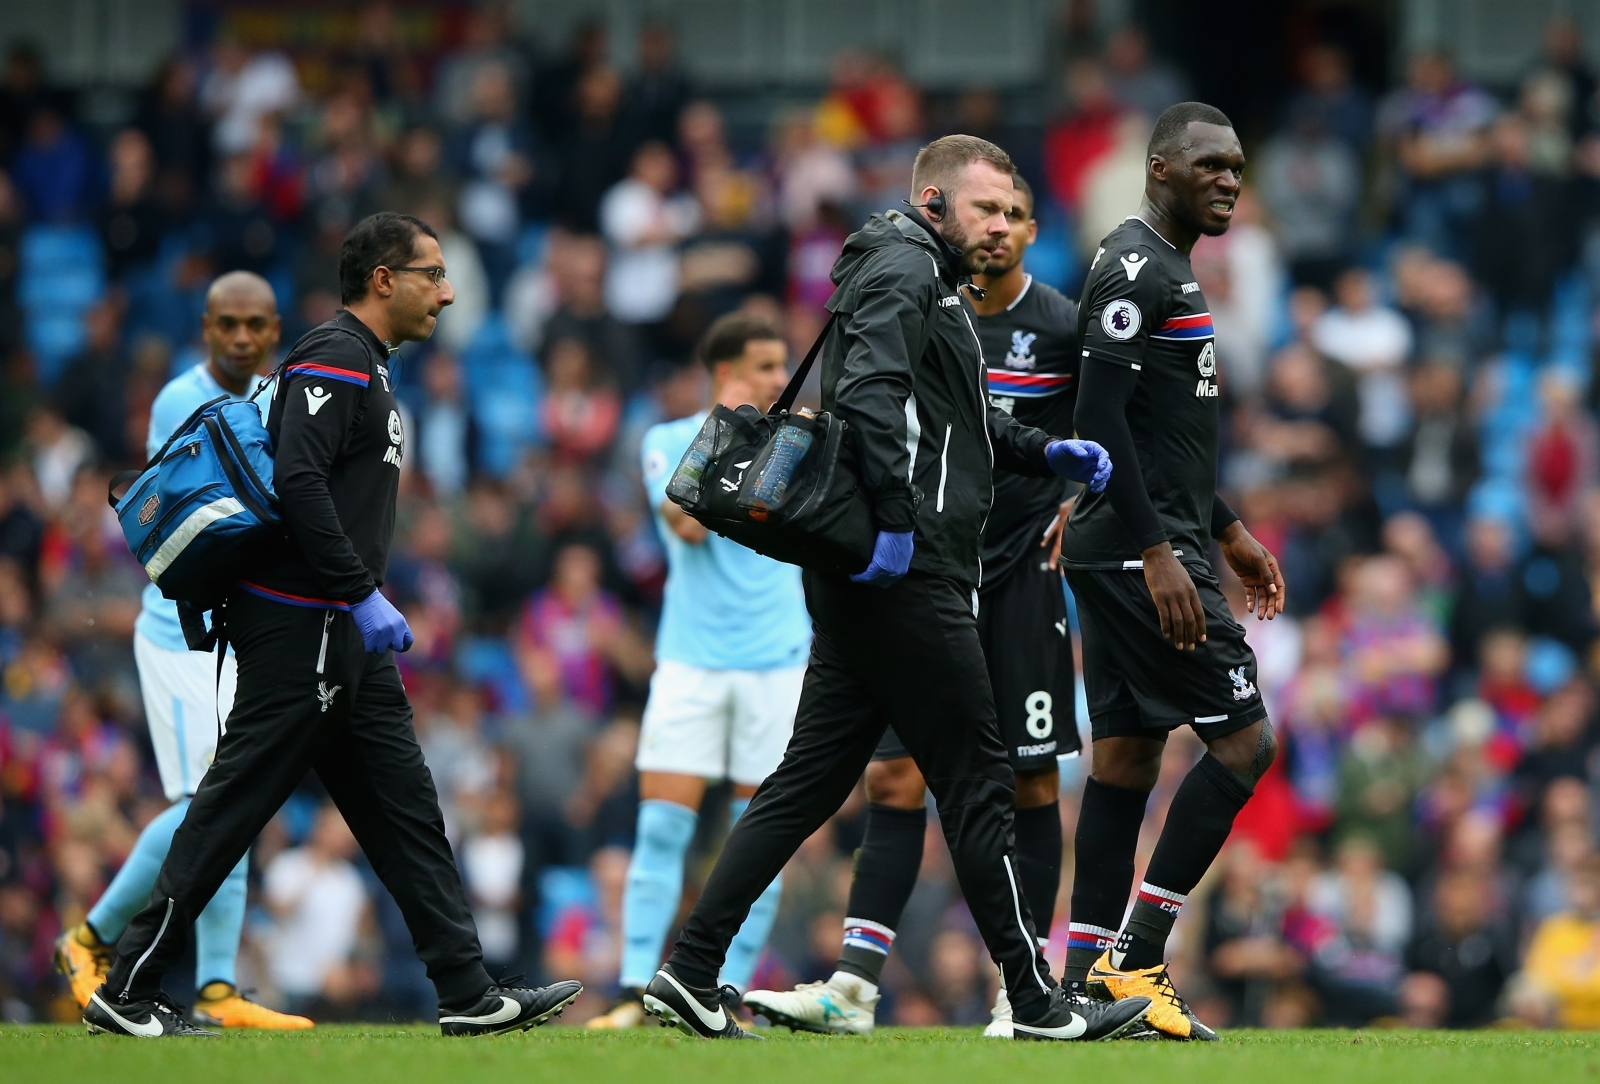 Christian Benteke to miss next six weeks